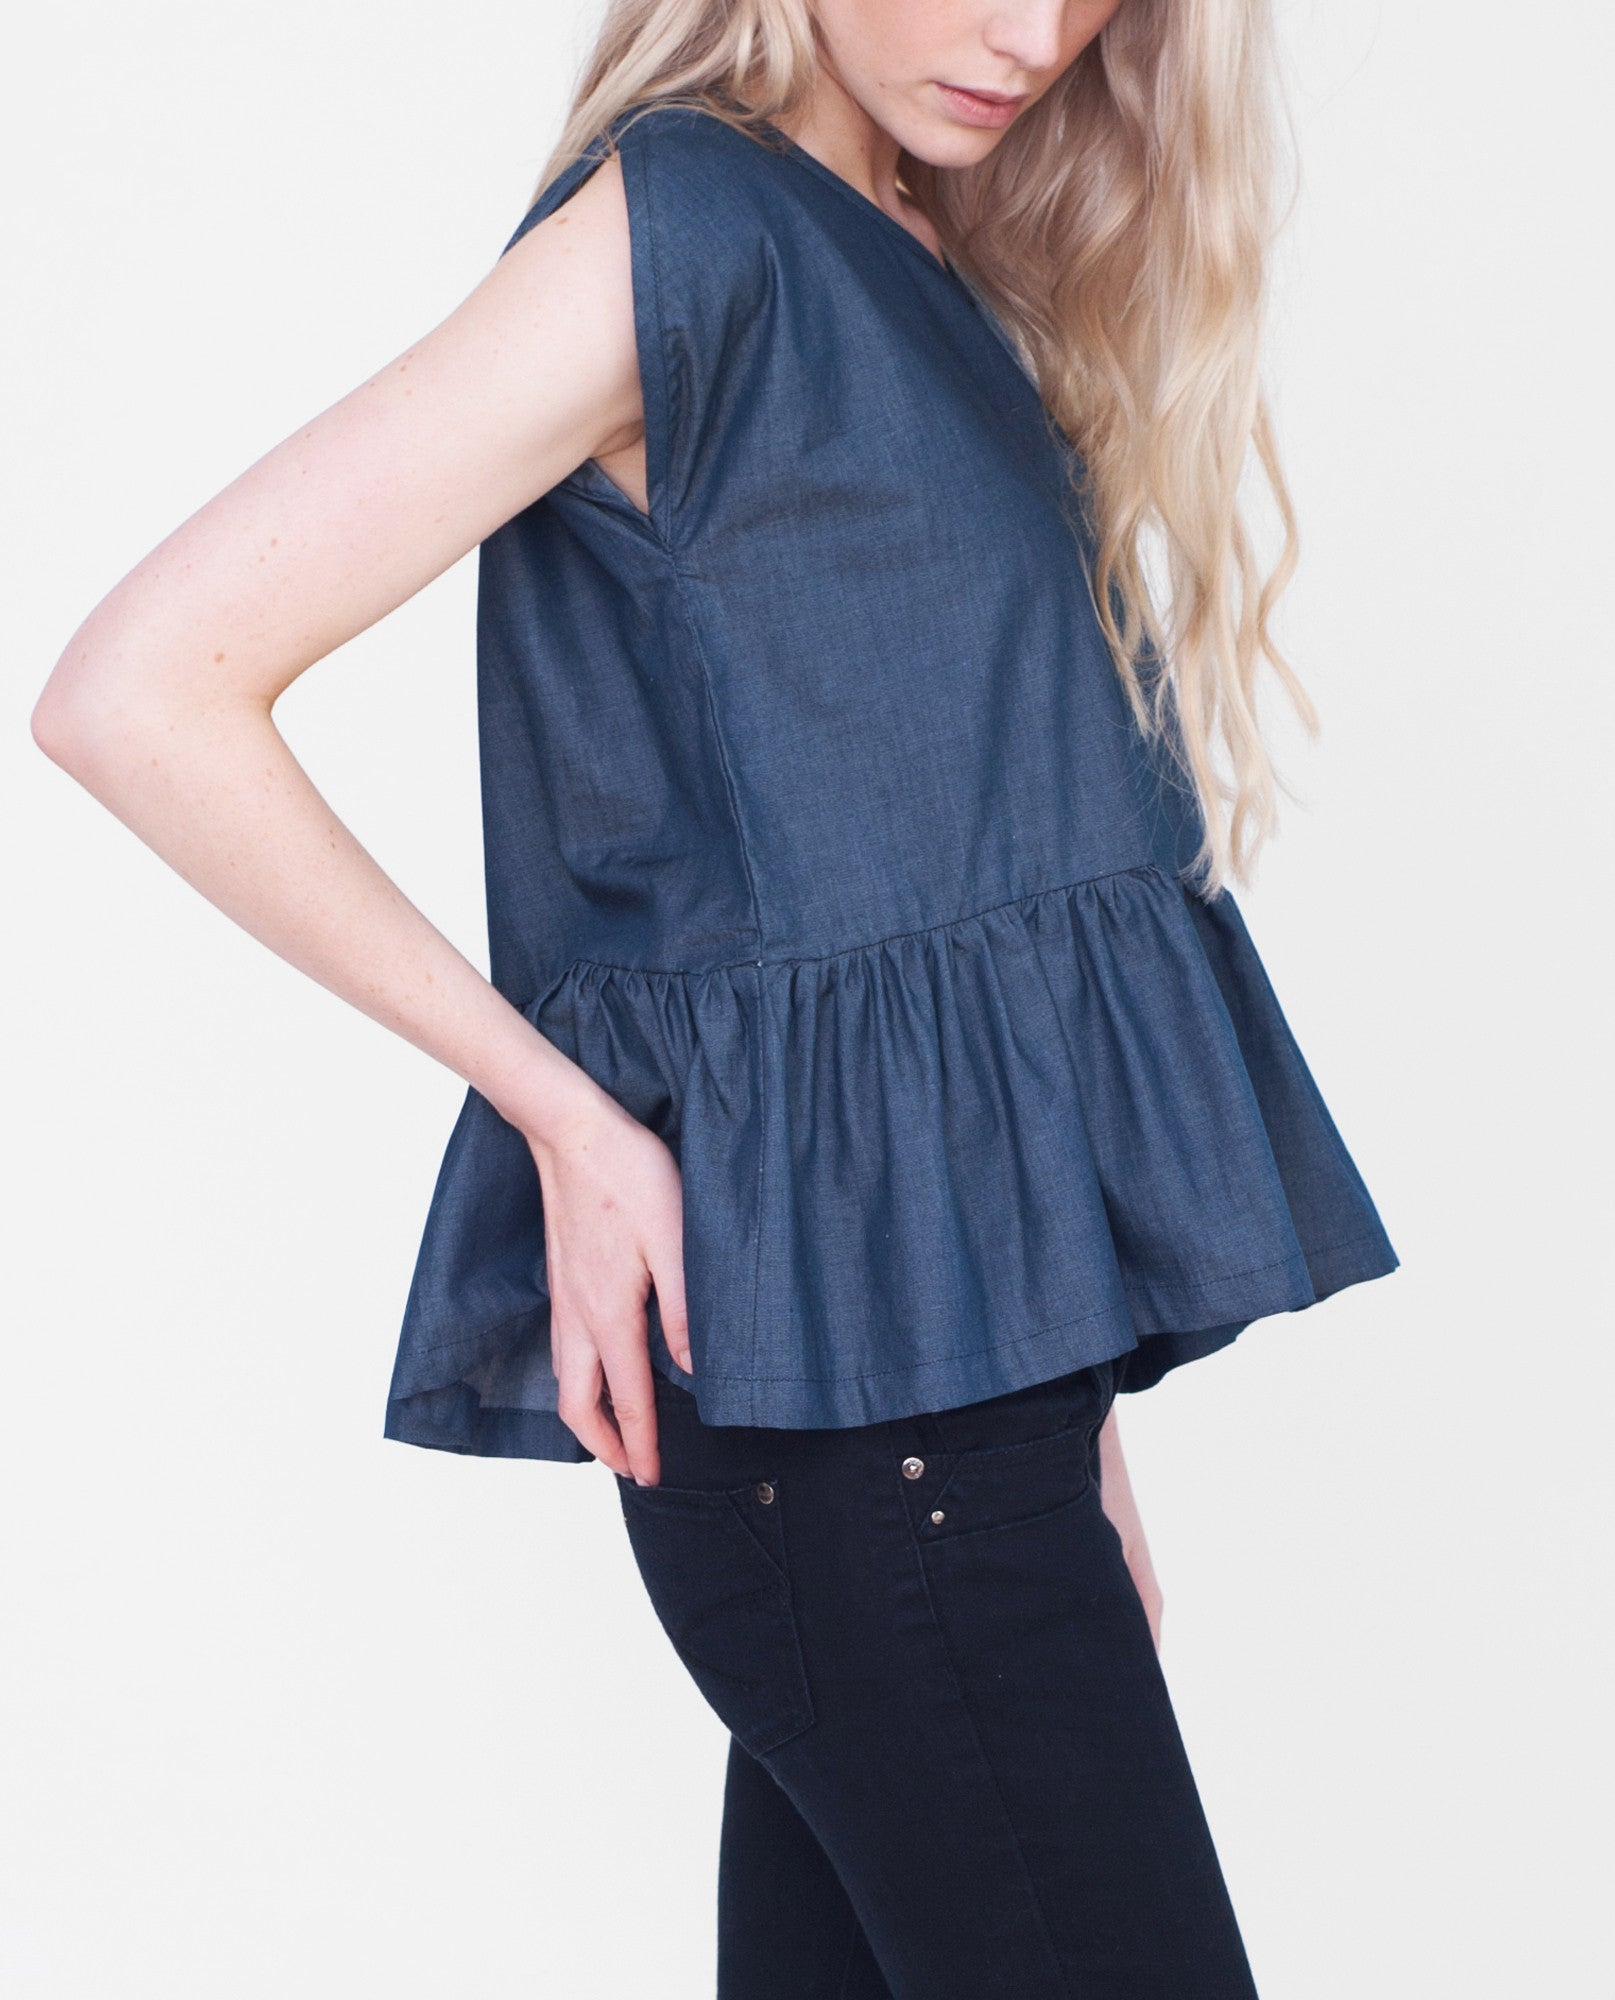 BELLE Cotton Denim Top In Navy Denim